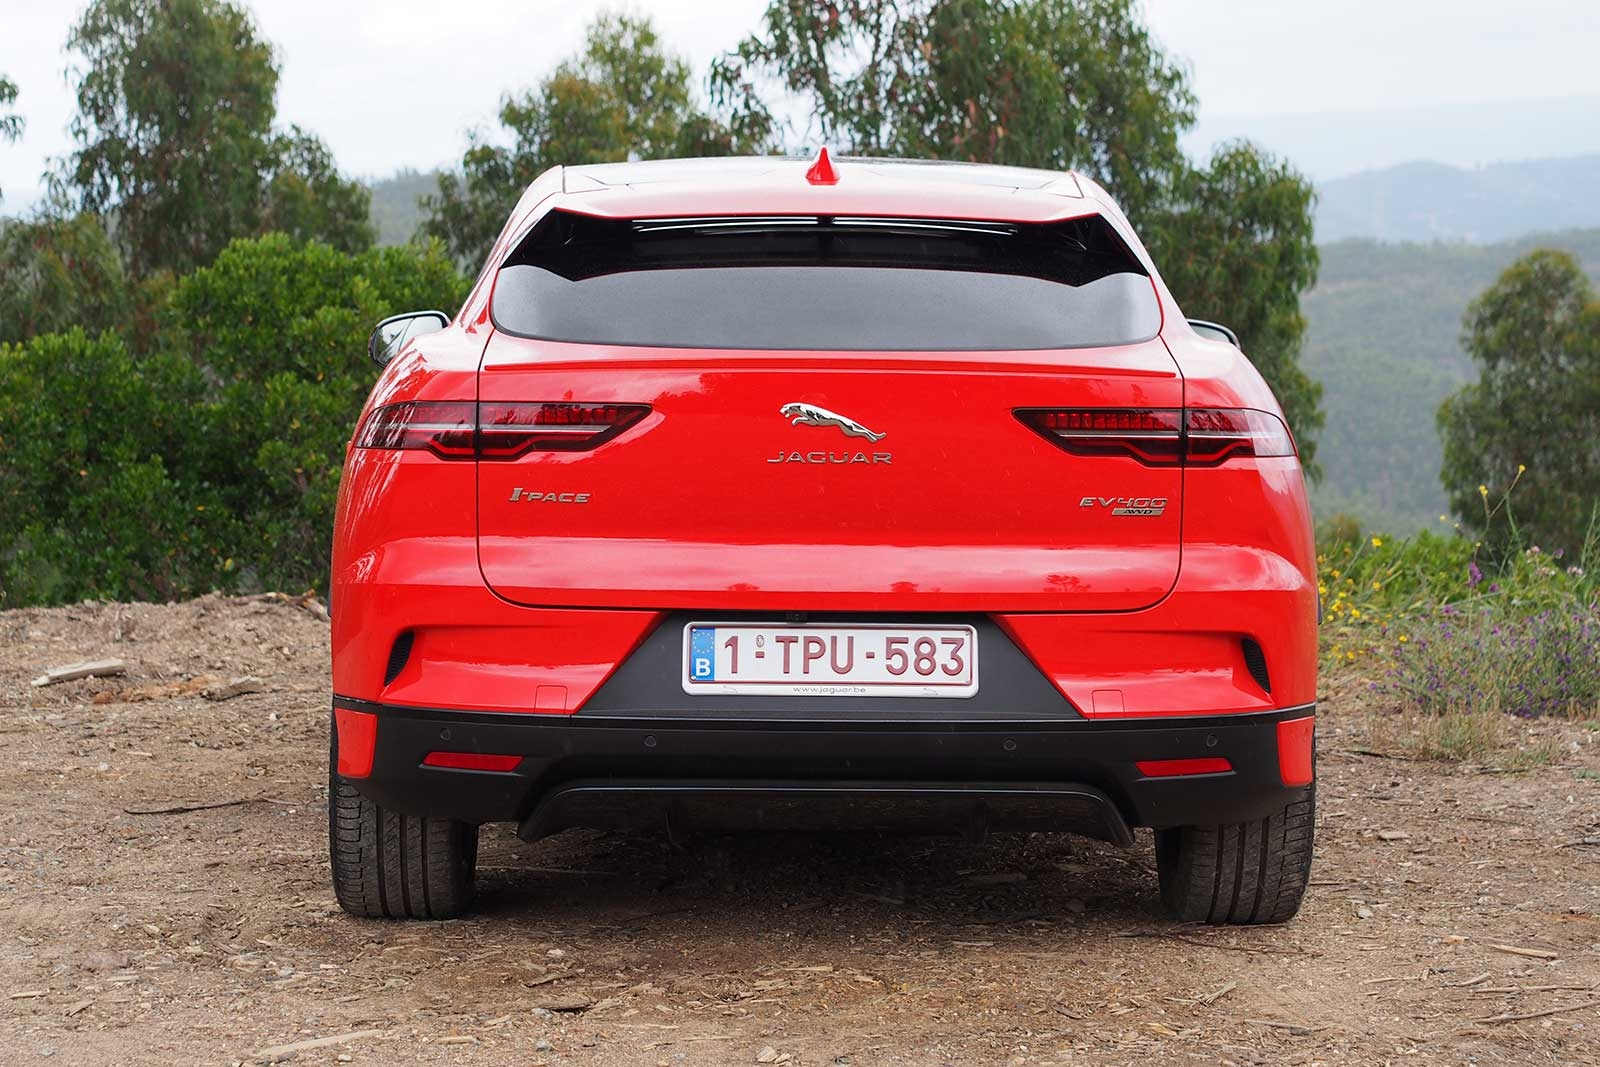 2019-Jaguar-I-Pace-Rear-03